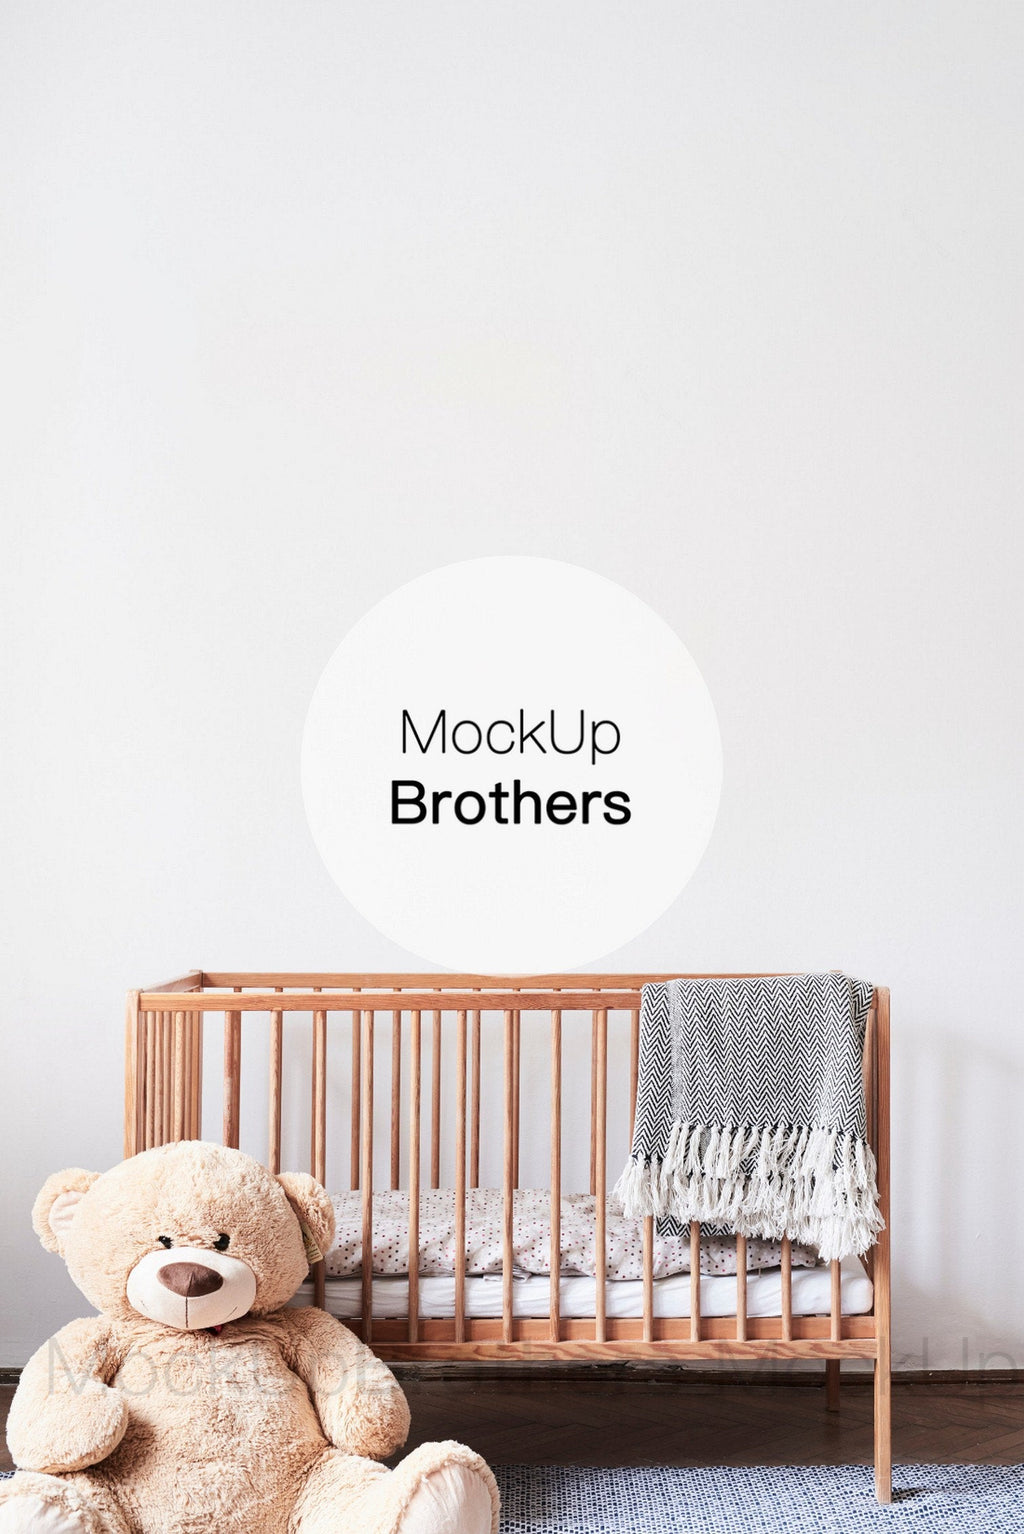 Cute nursery room mockup with teddy bear by mockupbrothers